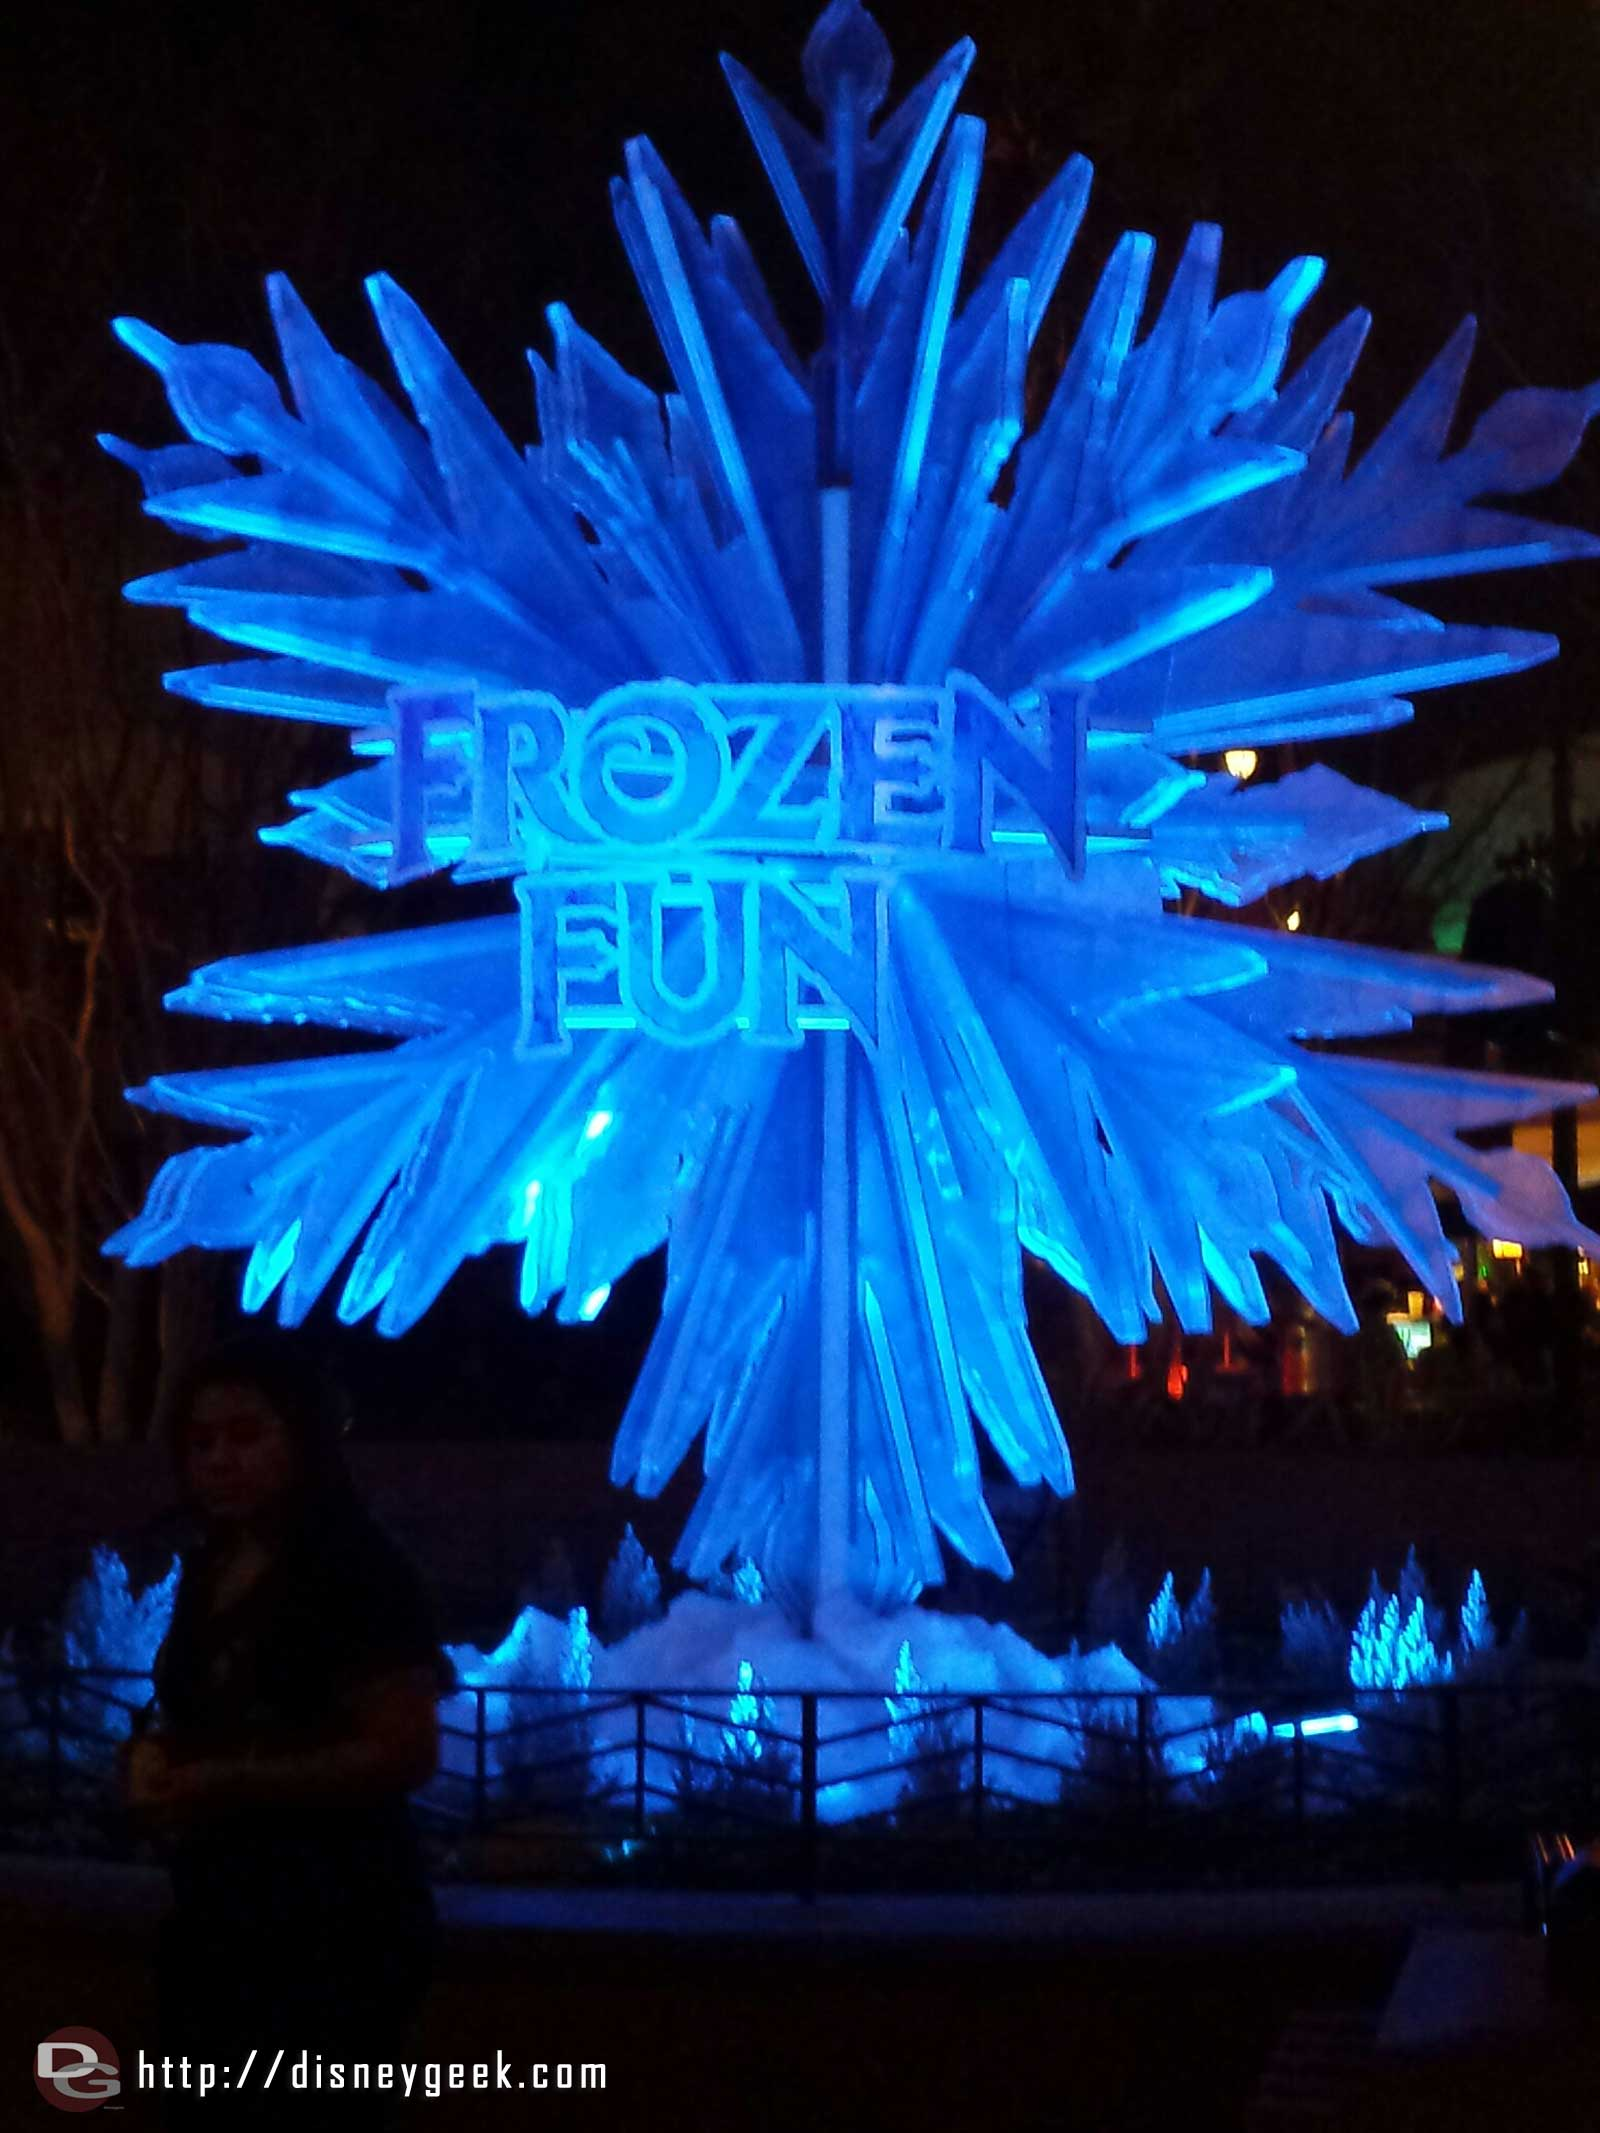 #FrozenFun photo op on #BuenaVistaStreet lit up